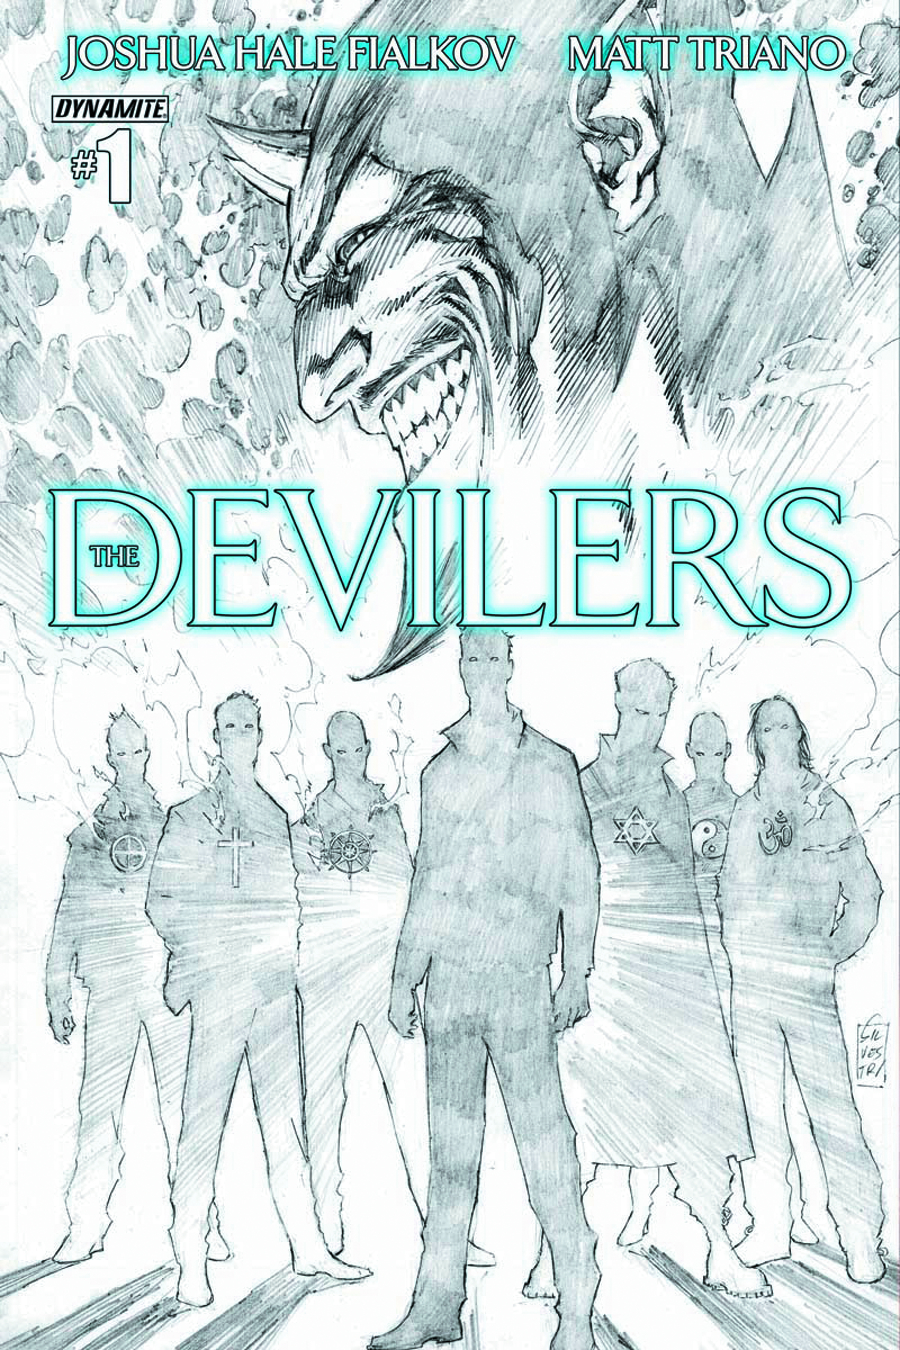 THE DEVILERS #1